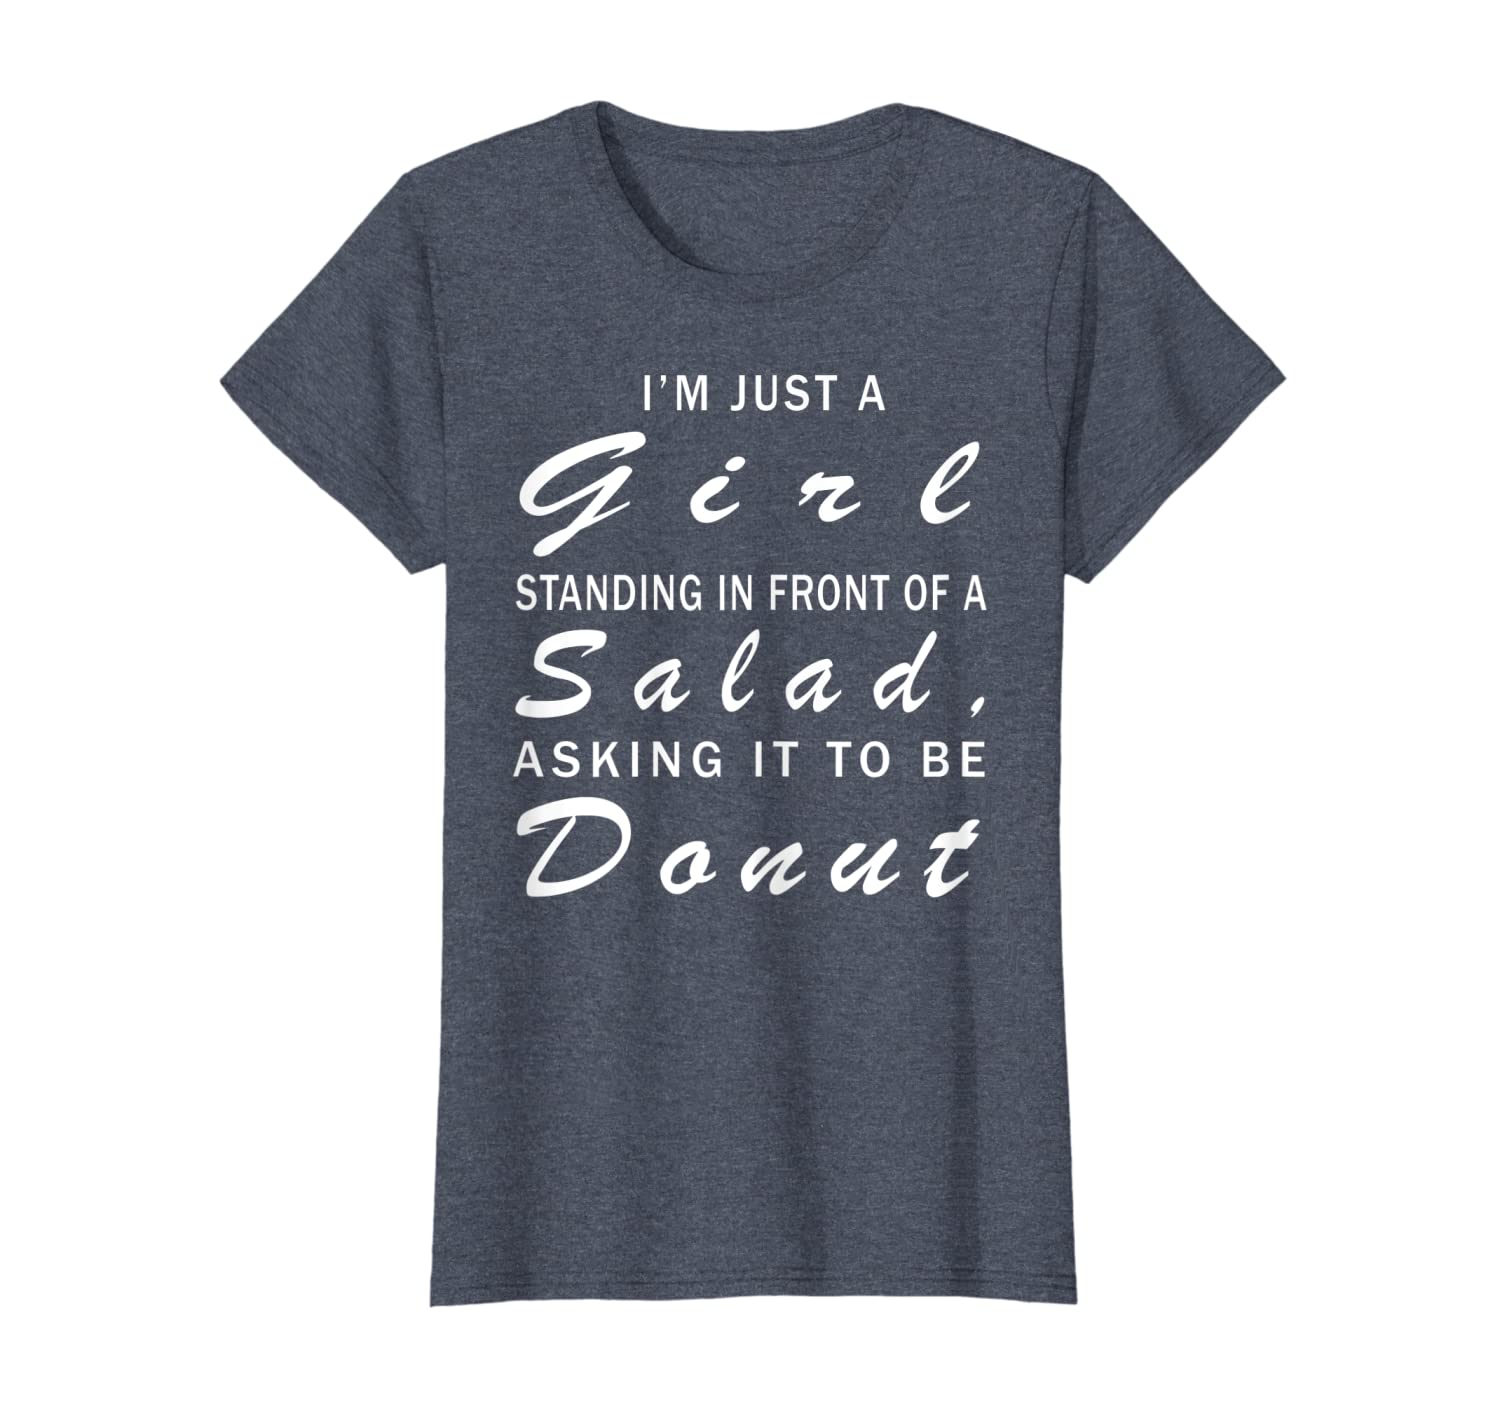 Im Just A Girl Standing In Front Of Salad Asking Donut Tee Unisex Tshirt